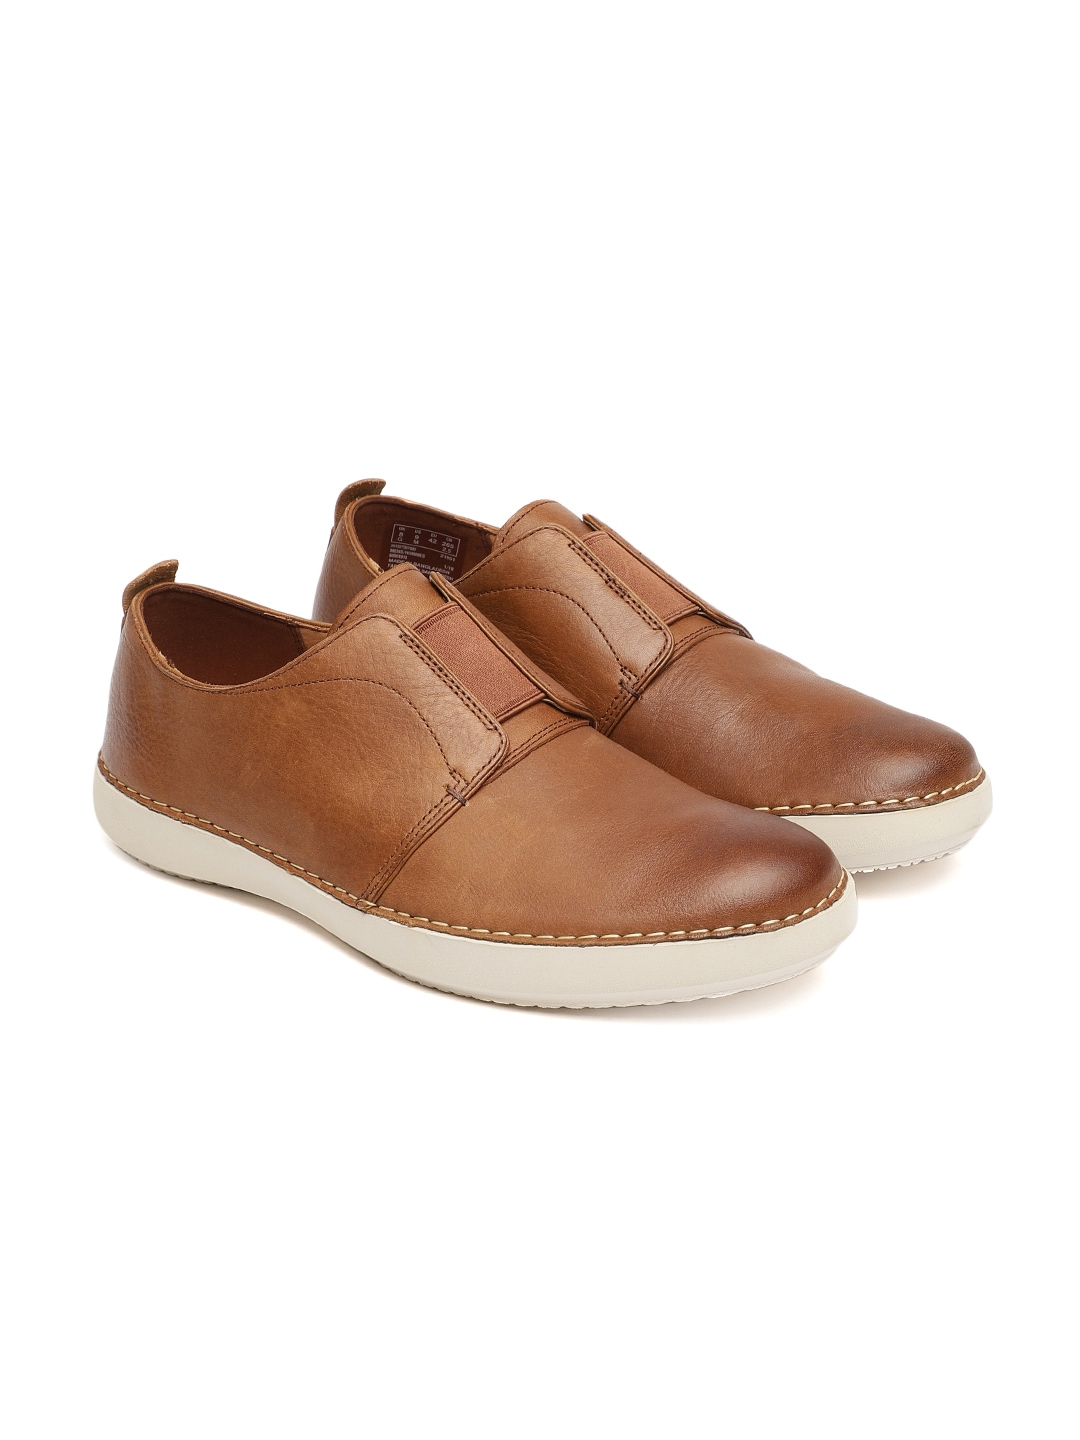 69dcfc5e7 CLARKS - Exclusive Clarks Shoes Online Store in India - Myntra